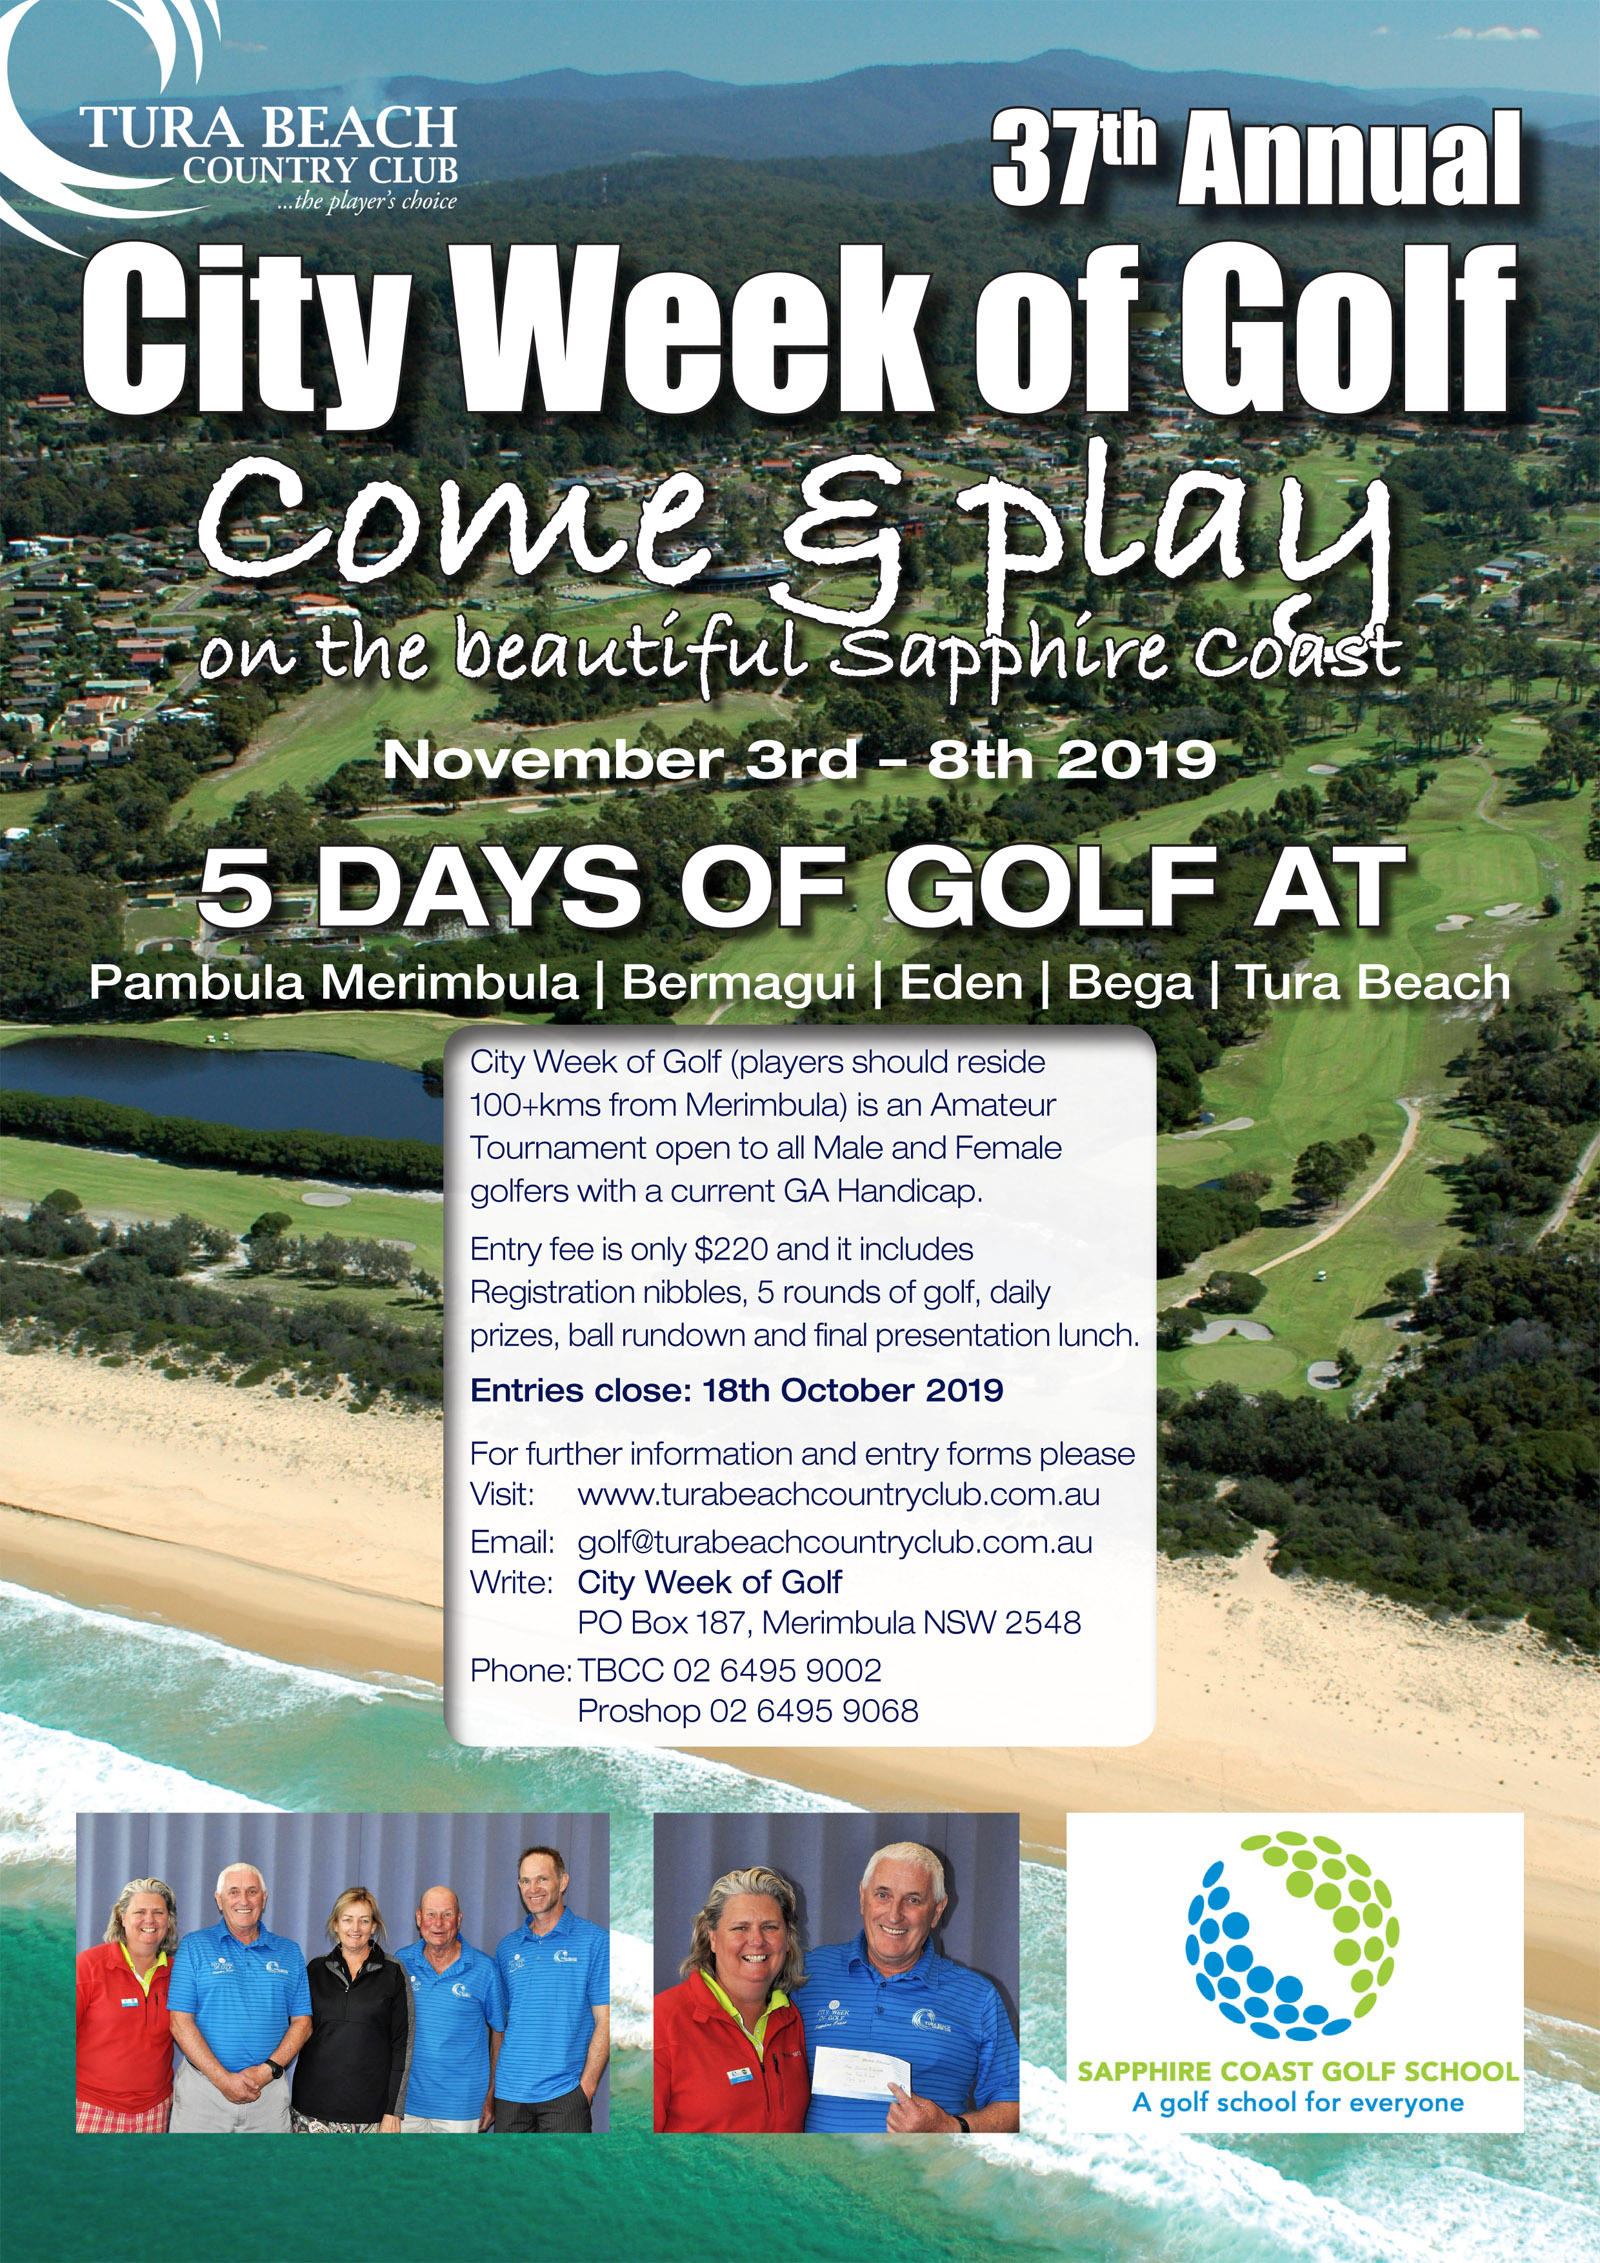 city week of golf tura beach country club